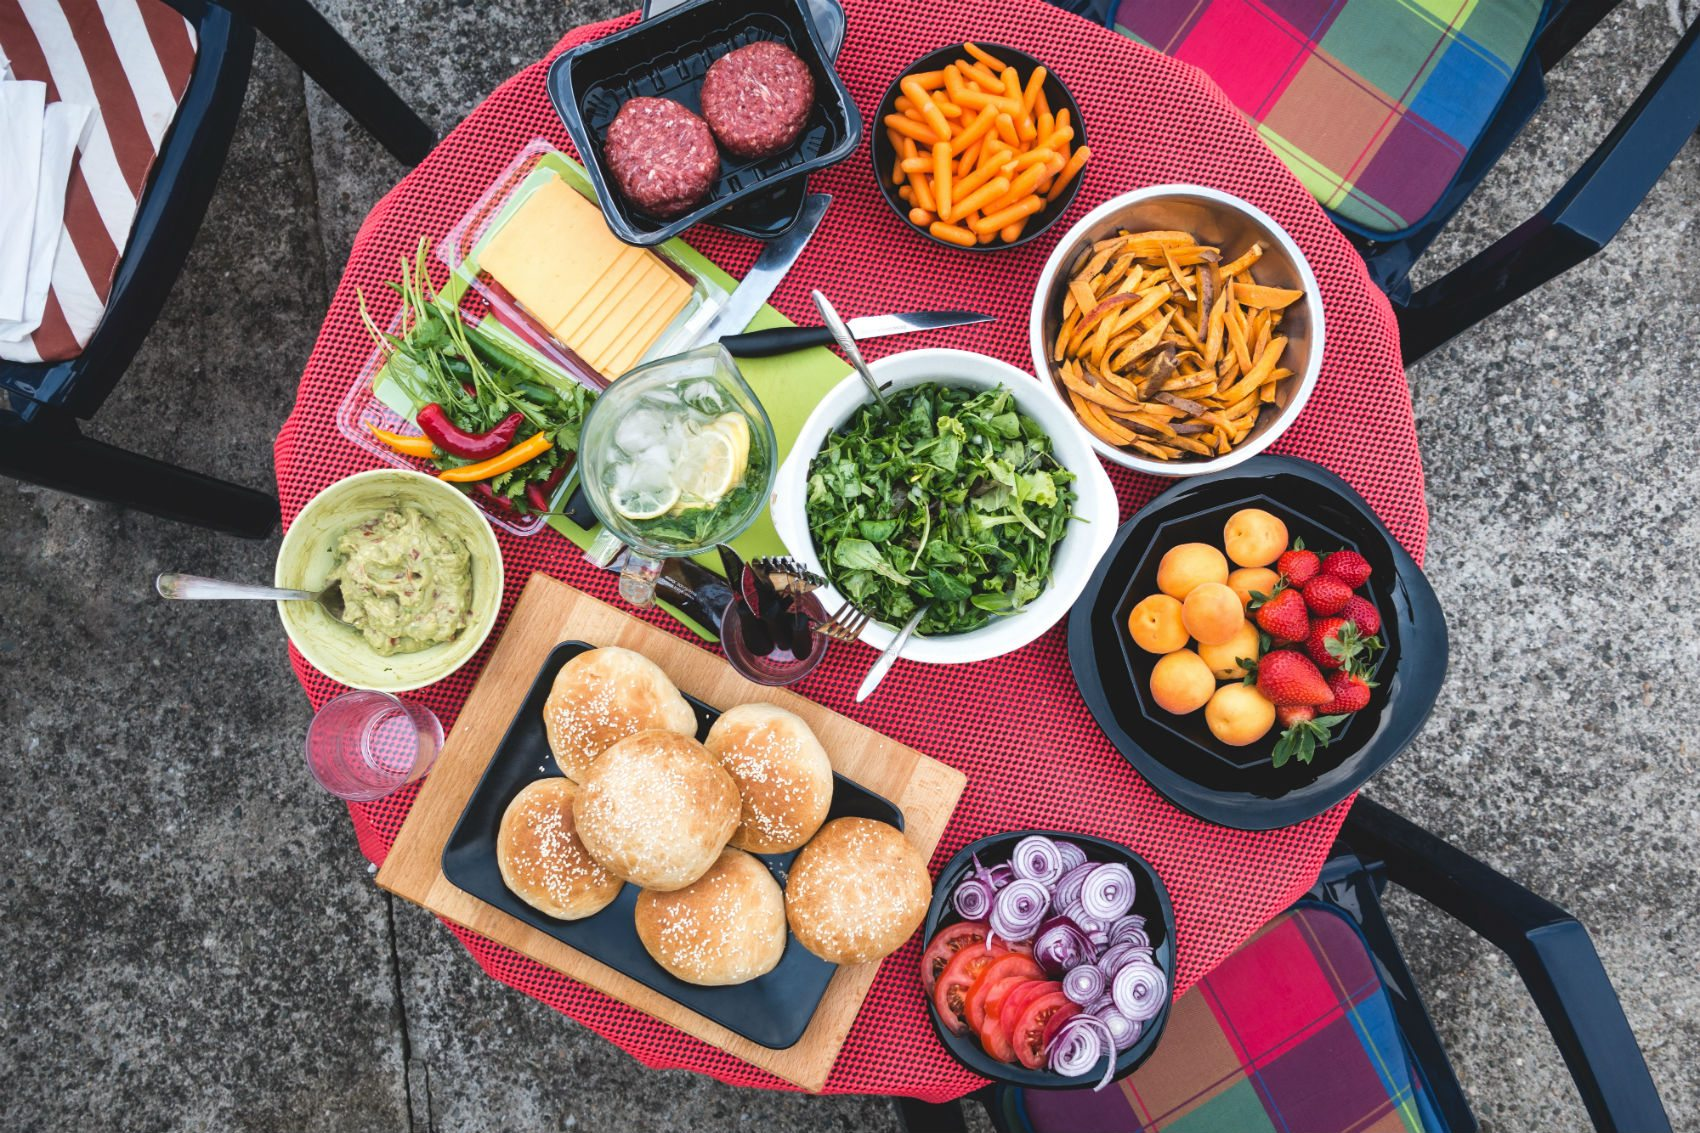 3 Simple and Healthy Side Dishes for Your Memorial Day BBQ